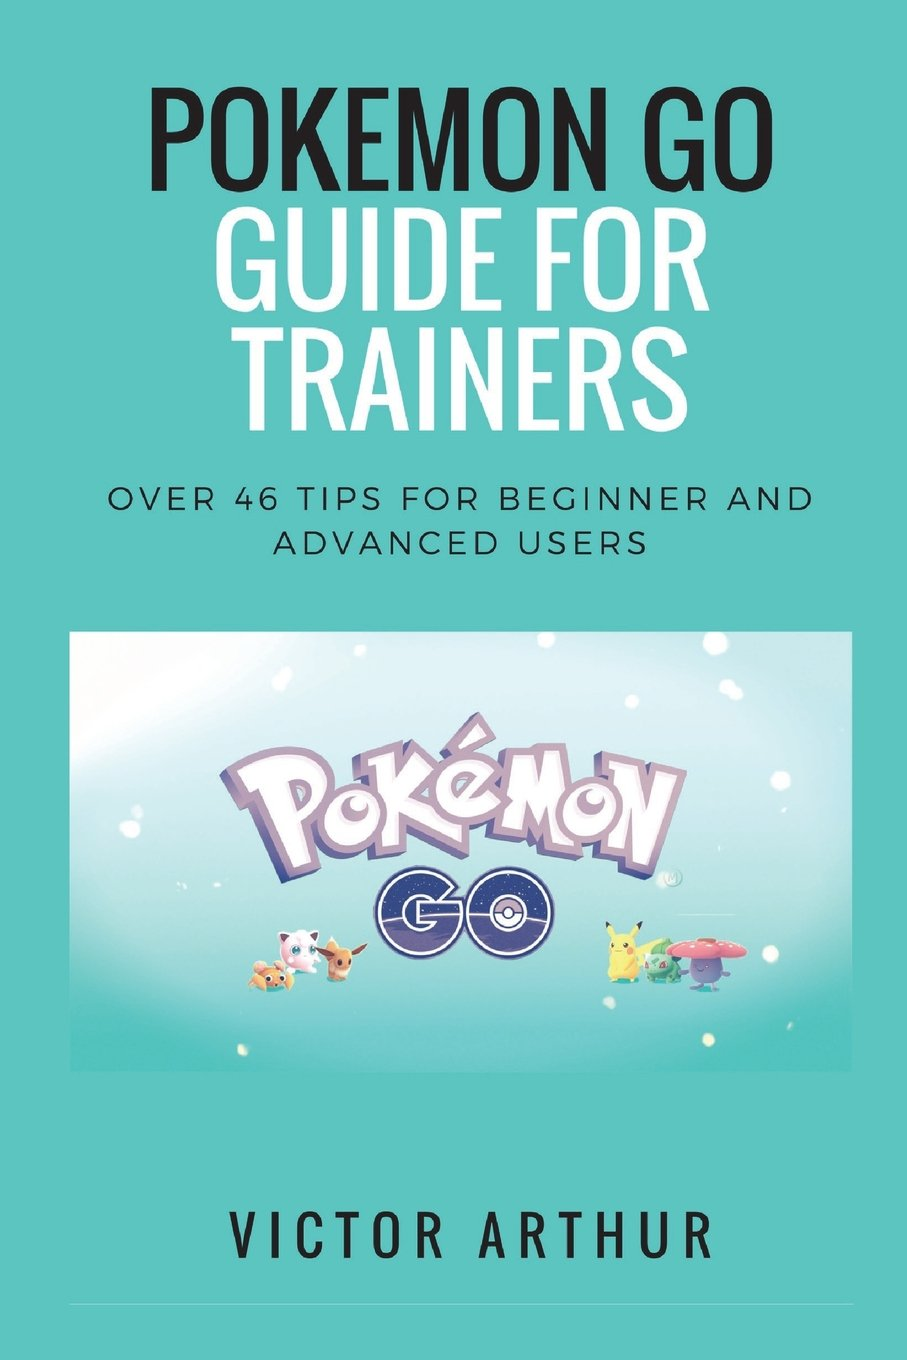 Download Pokemon Go Guide For Trainers: Over 46 Tips For Beginner And Advanced Users ebook